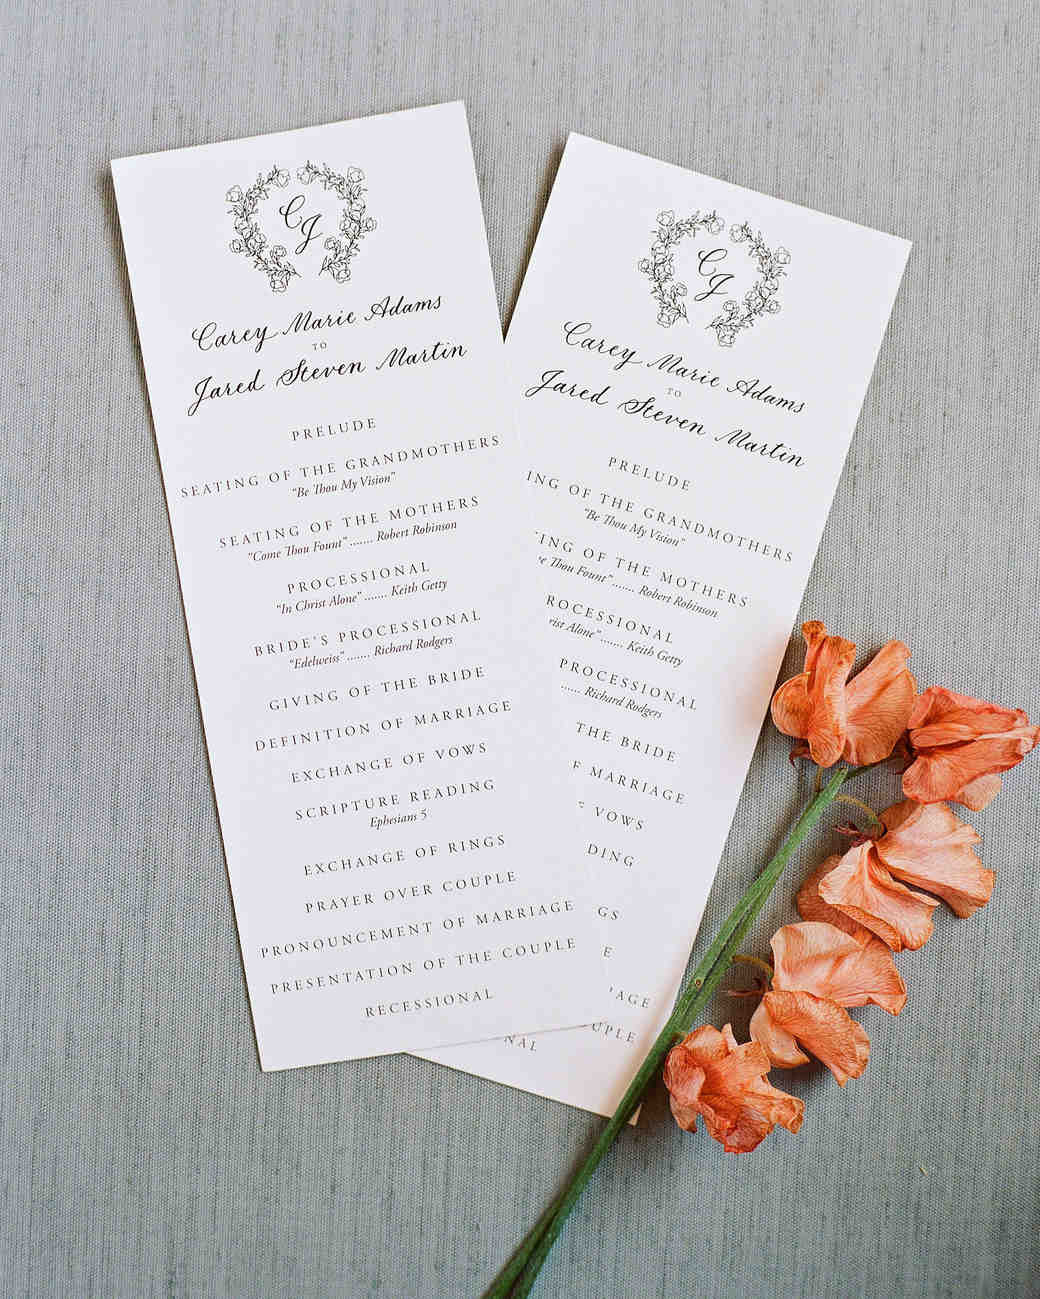 Wedding Programs: 44 Perfect Wedding Ceremony Programs